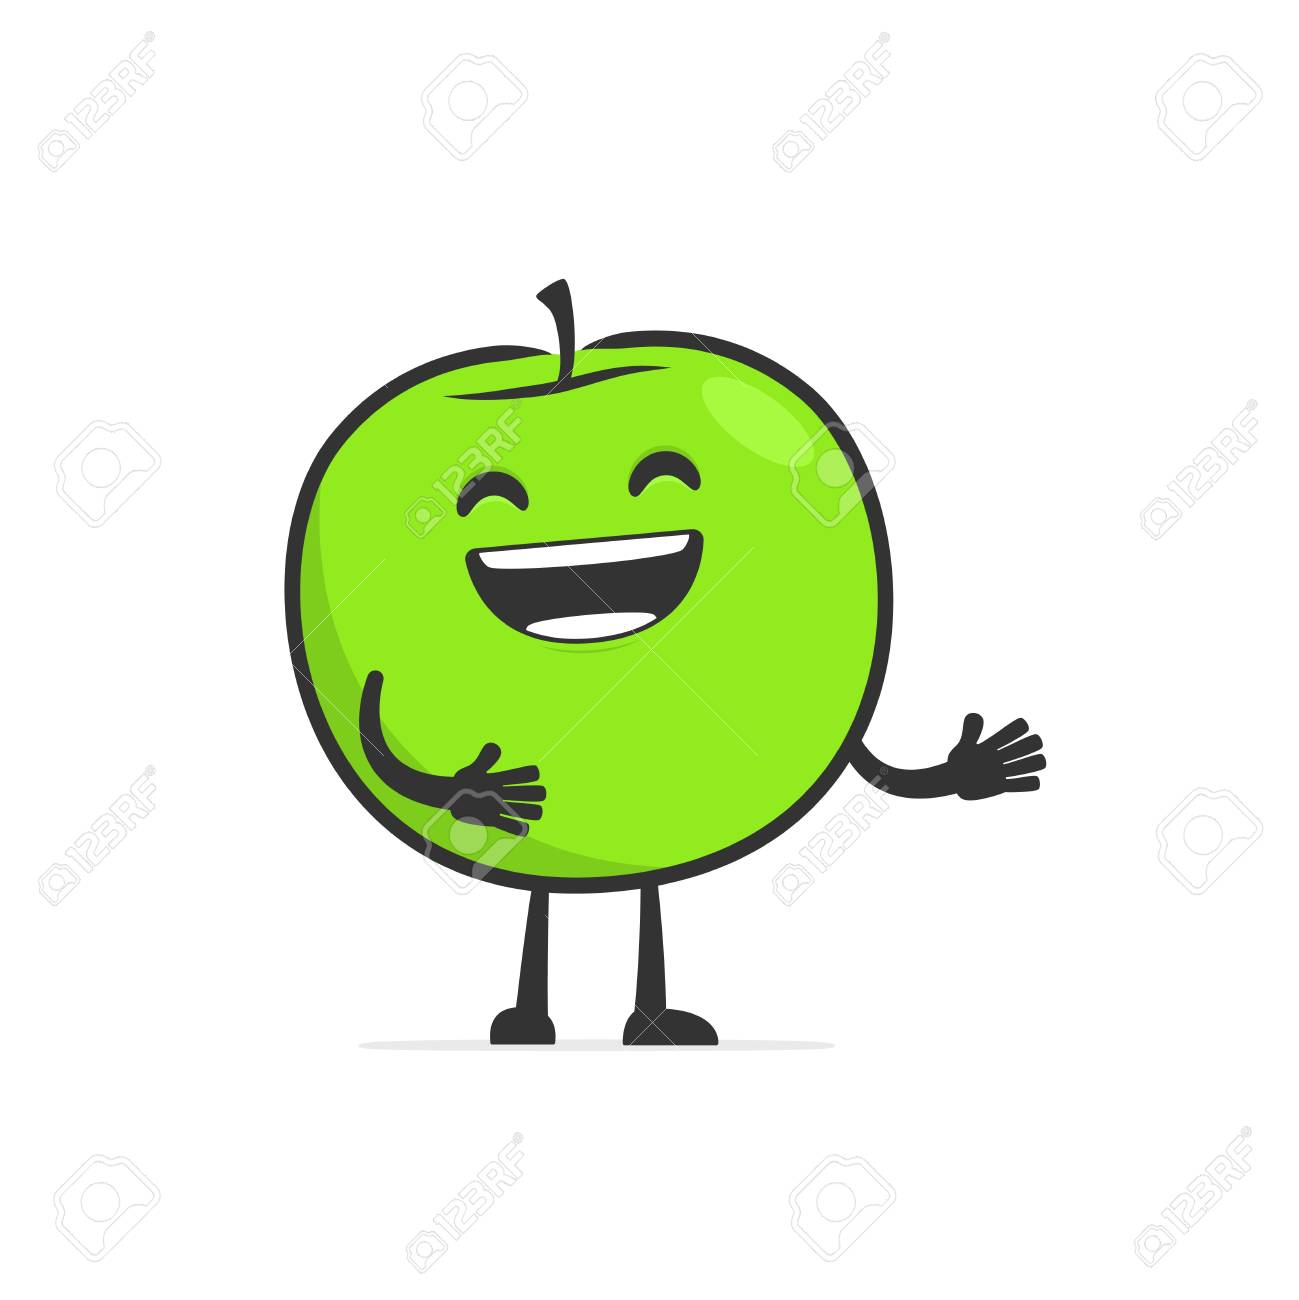 funny cartoon apple Stock Vector - 14773056